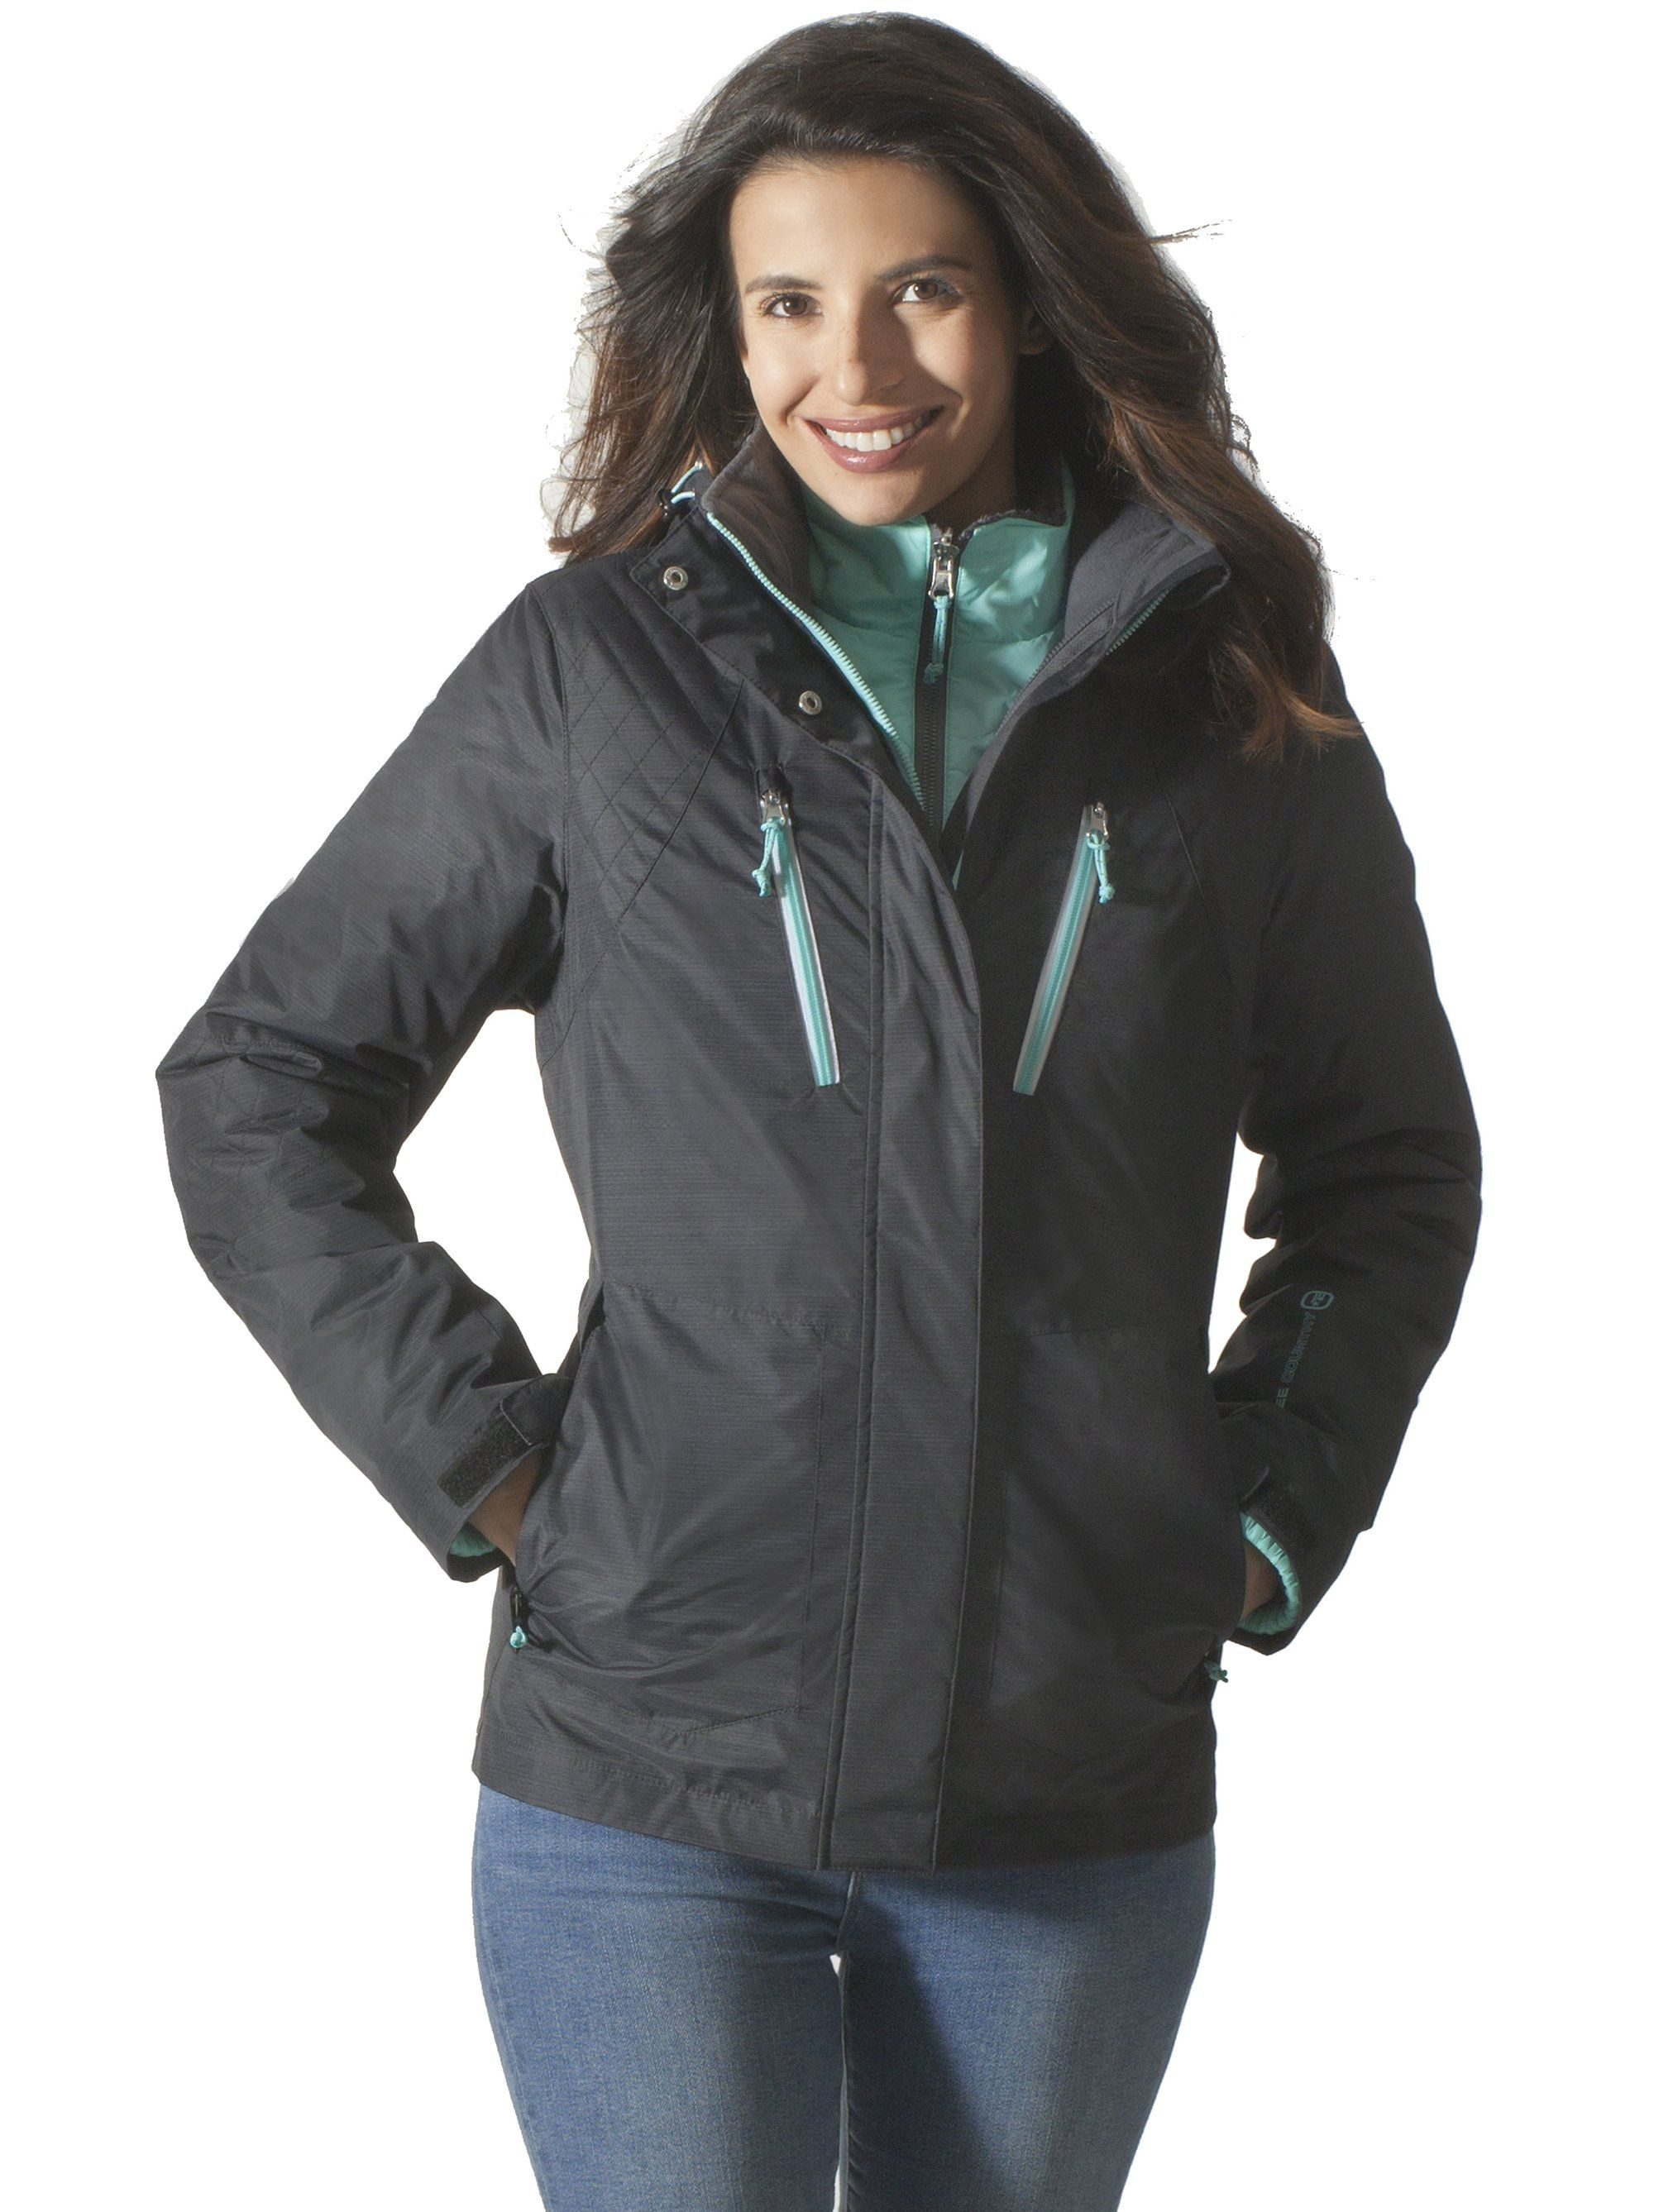 a117addda4c Women s Plus Size Plethora 3-in-1 Systems Jacket